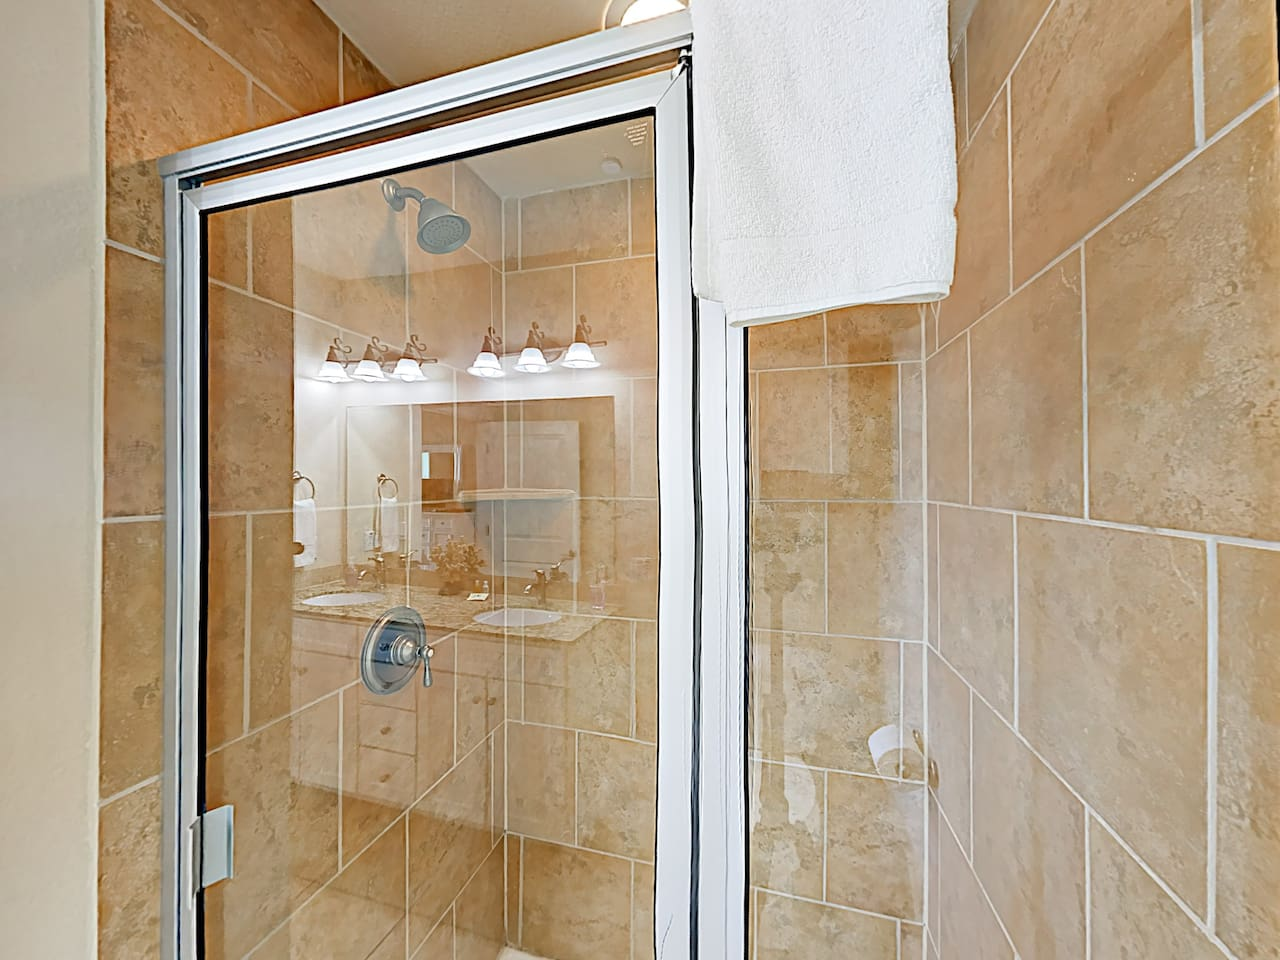 The master bathroom is equipped with a walk-in shower.